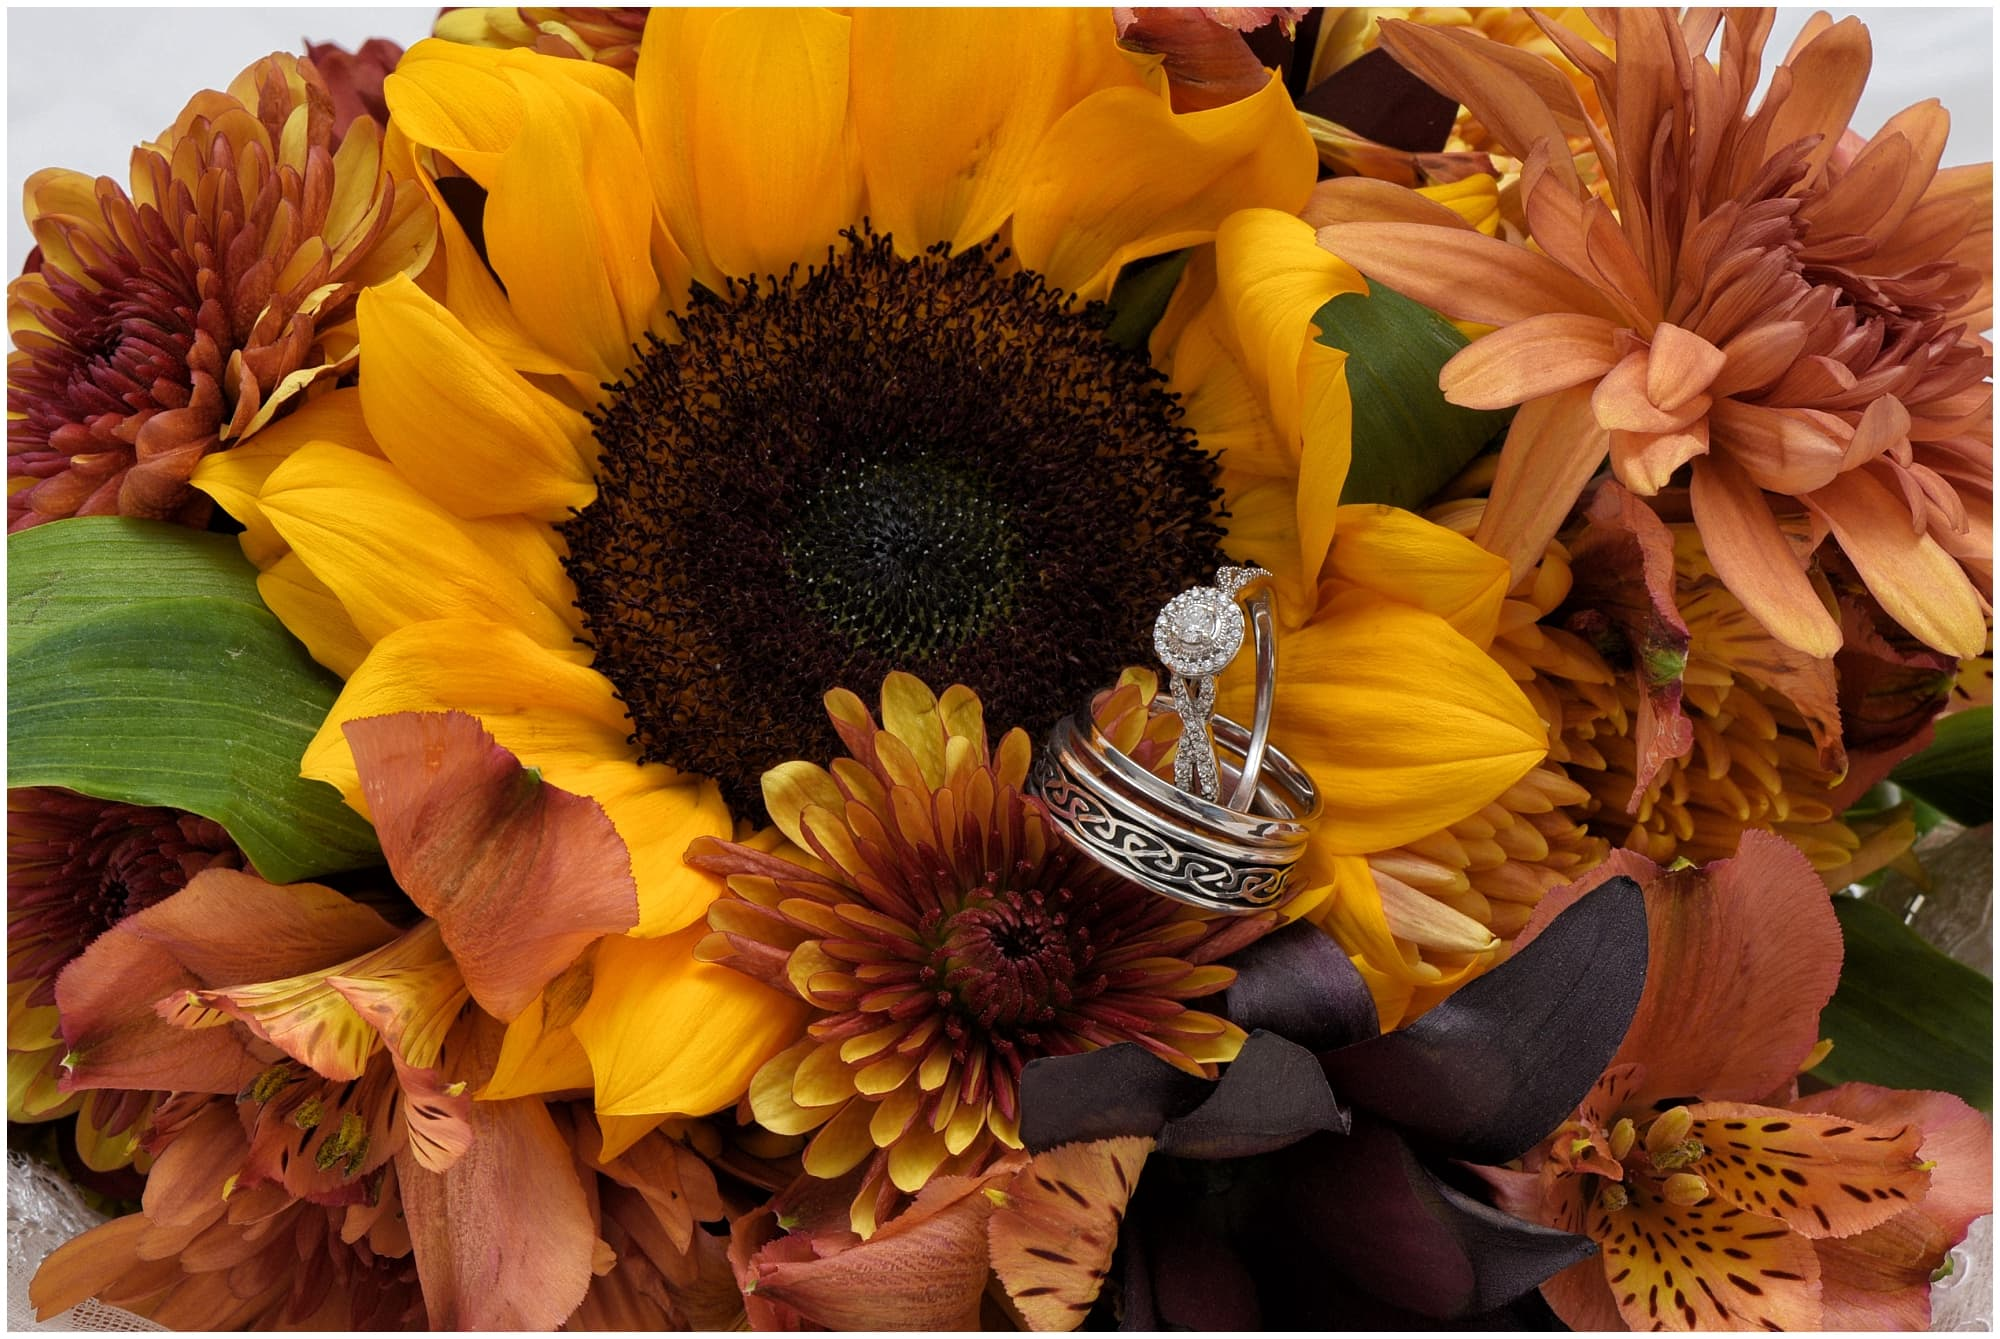 A beautiful sunflower bridal bouquet with wedding rings.